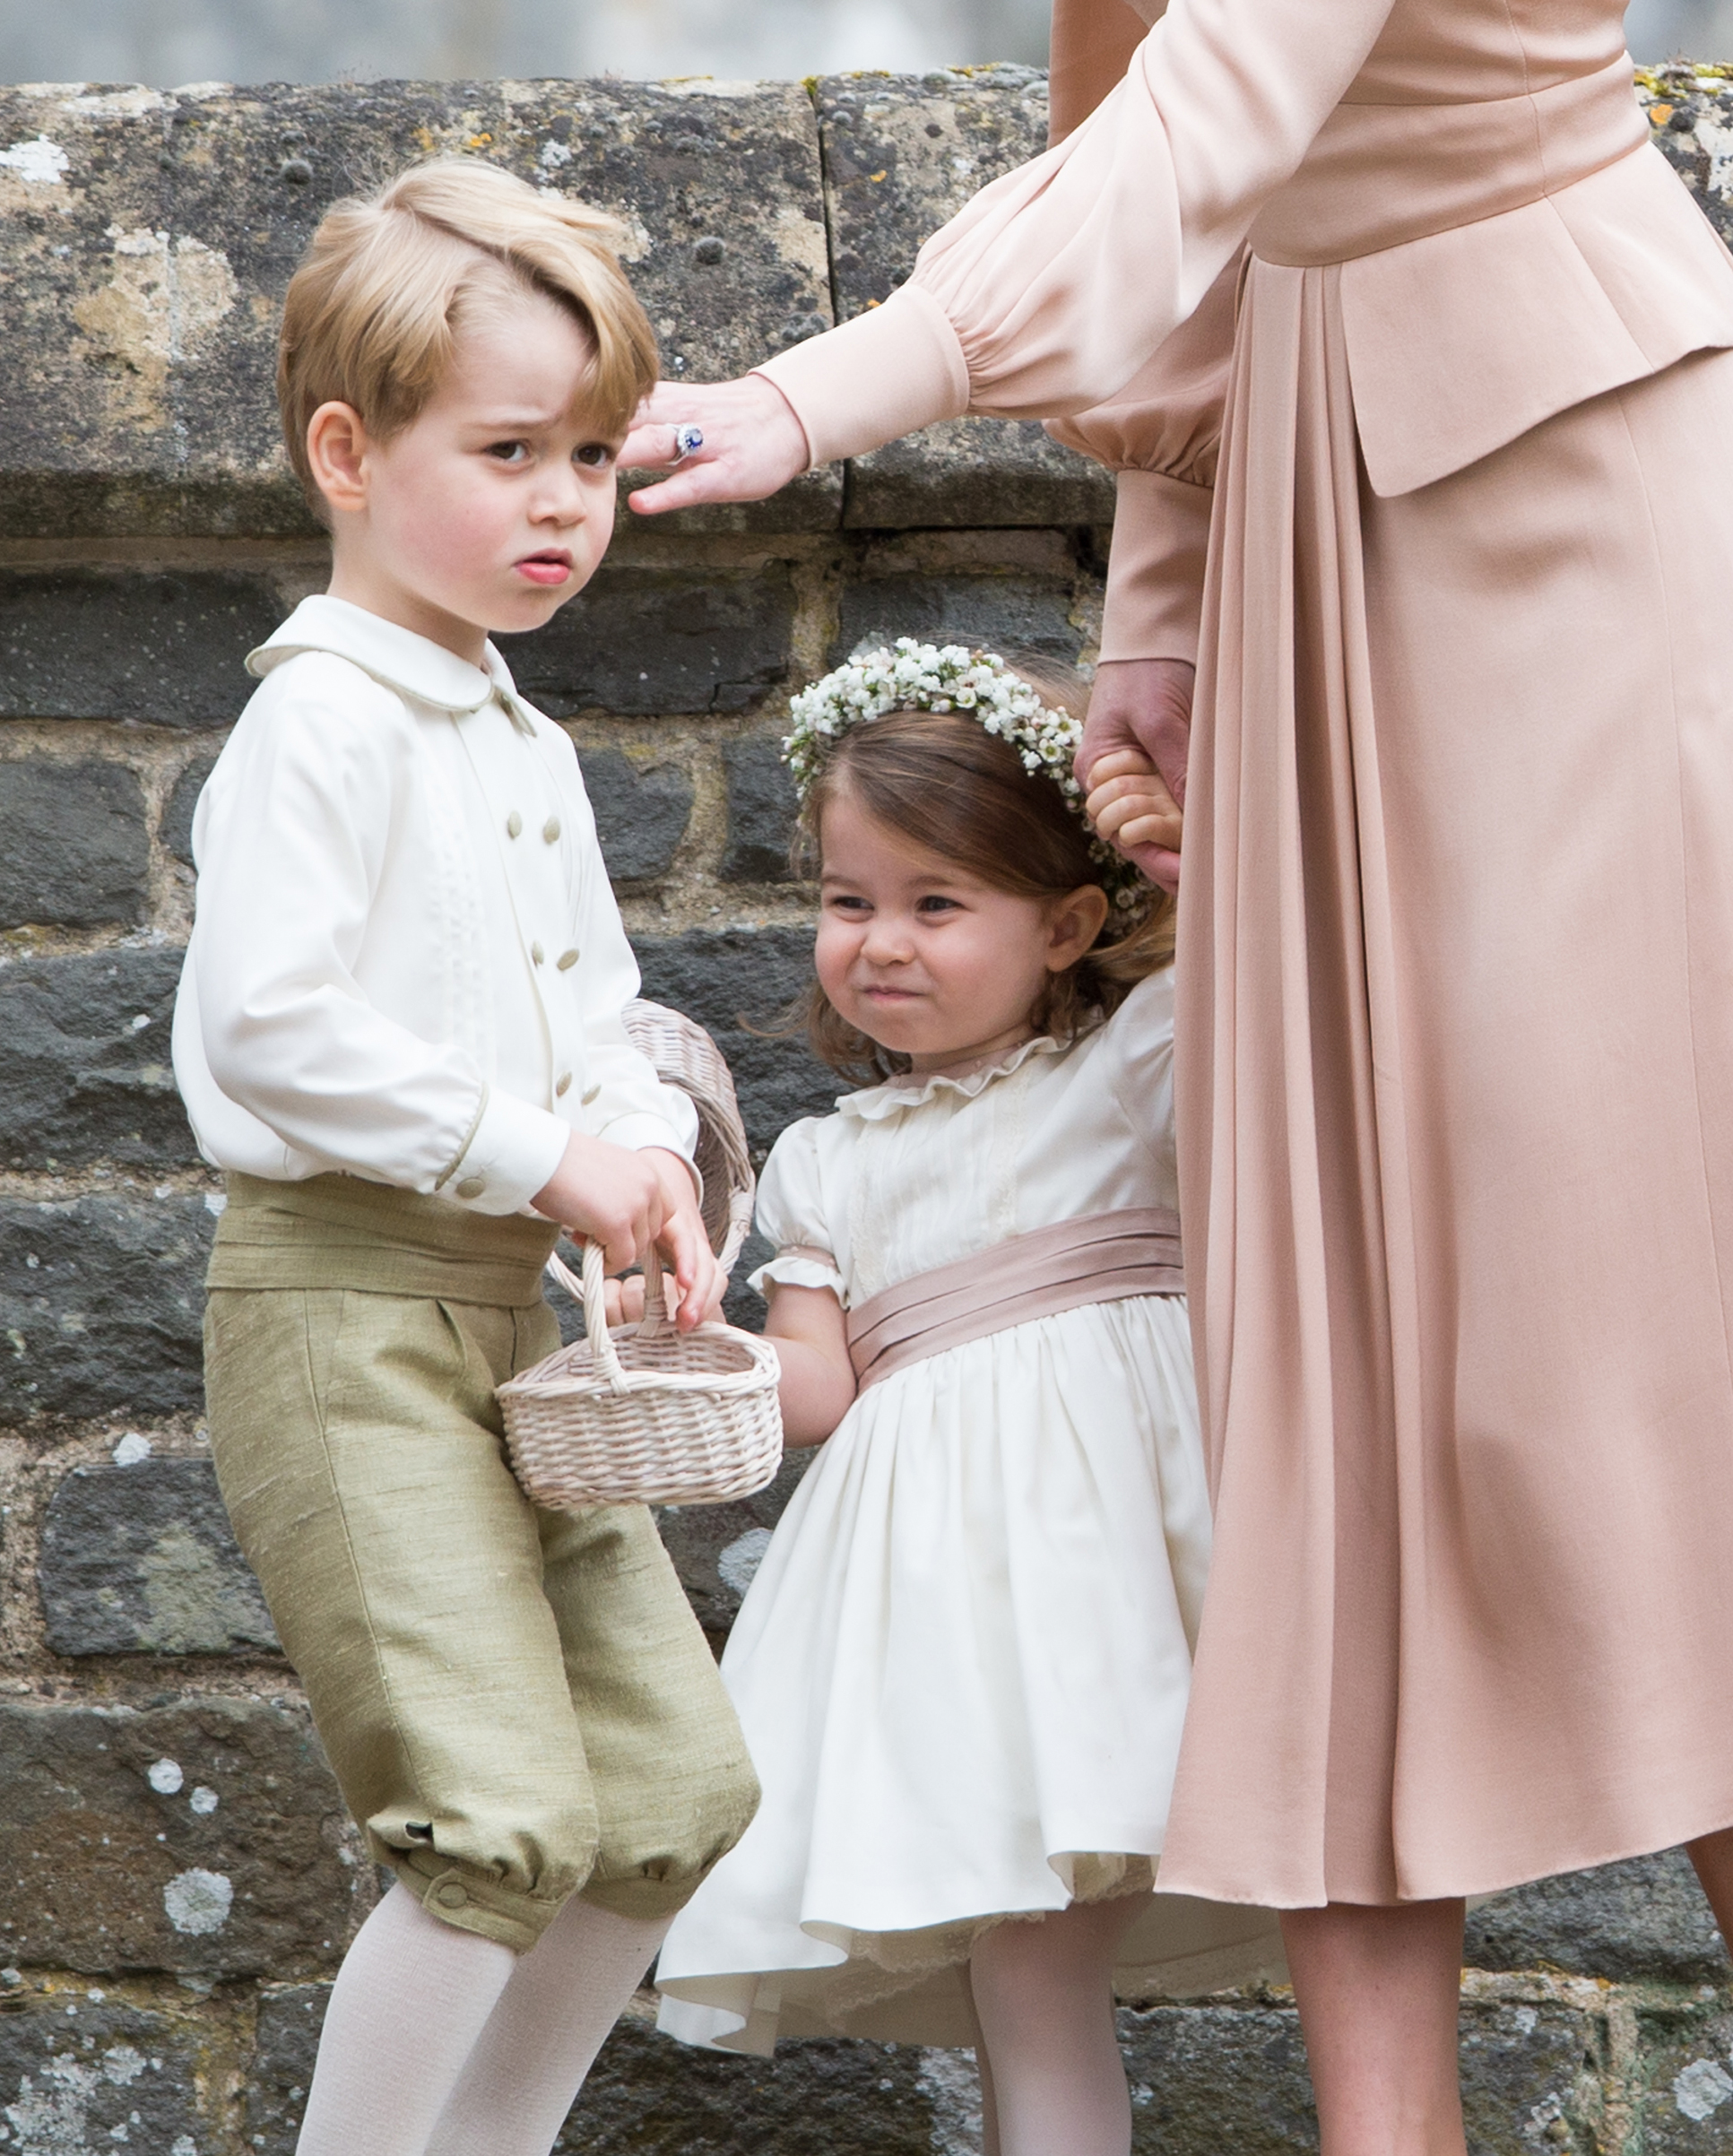 Princess Charlotte of Cambridge, bridesmaid, and Prince George of Cambridge attend the wedding Of Pippa Middleton and James Matthews at St Mark's Church on May 20, 2017 in Englefield Green, England.